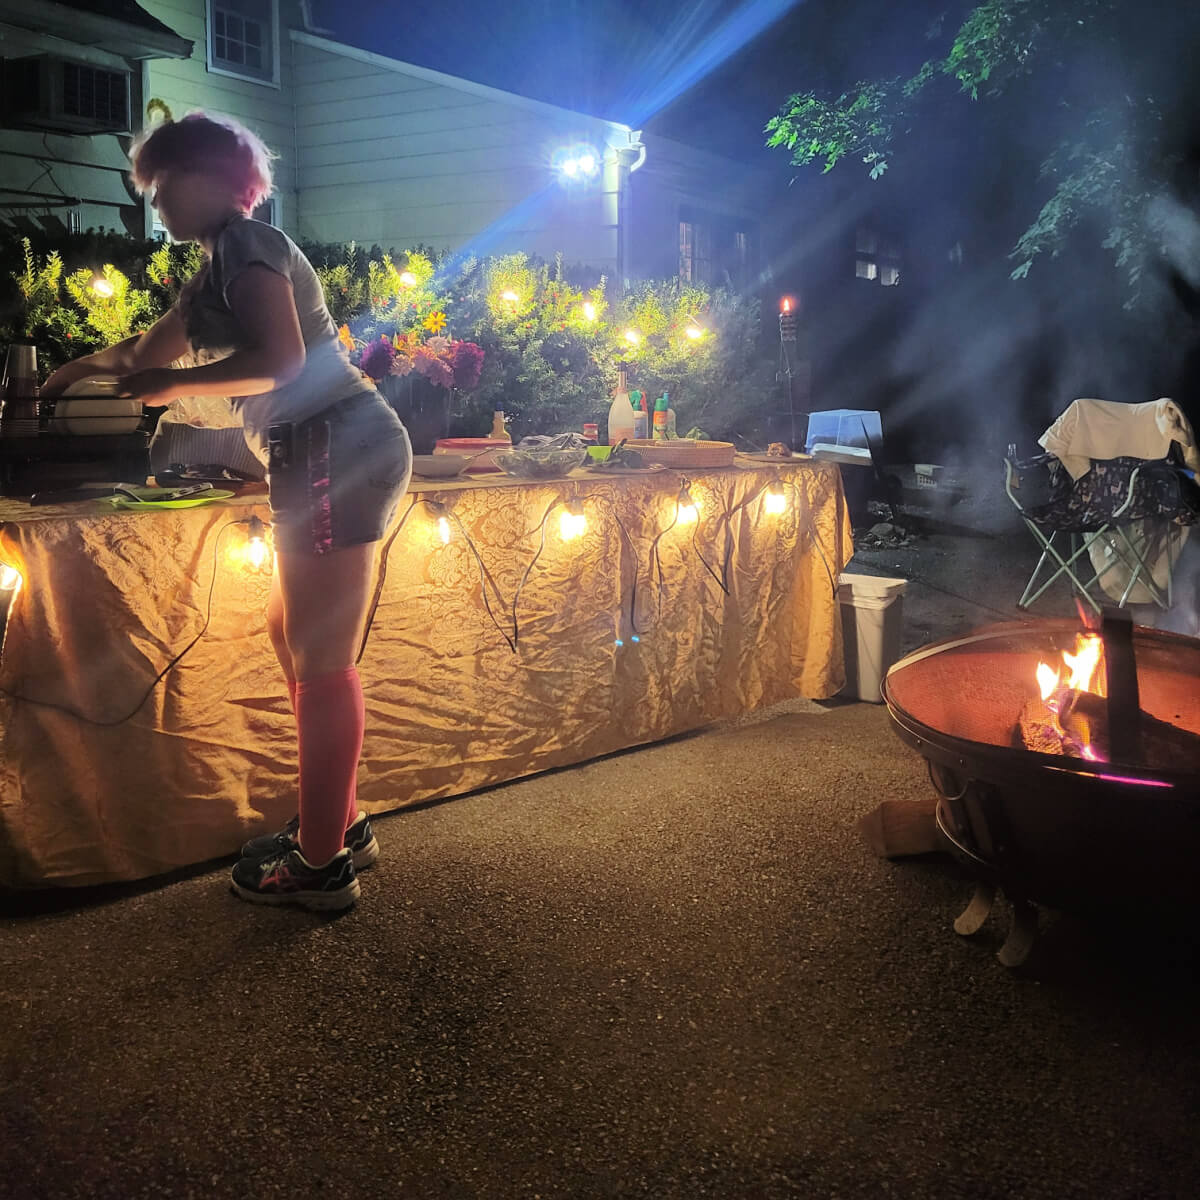 Awesome Shatterproof Outdoor String Lights For Your Next Party - Novtech